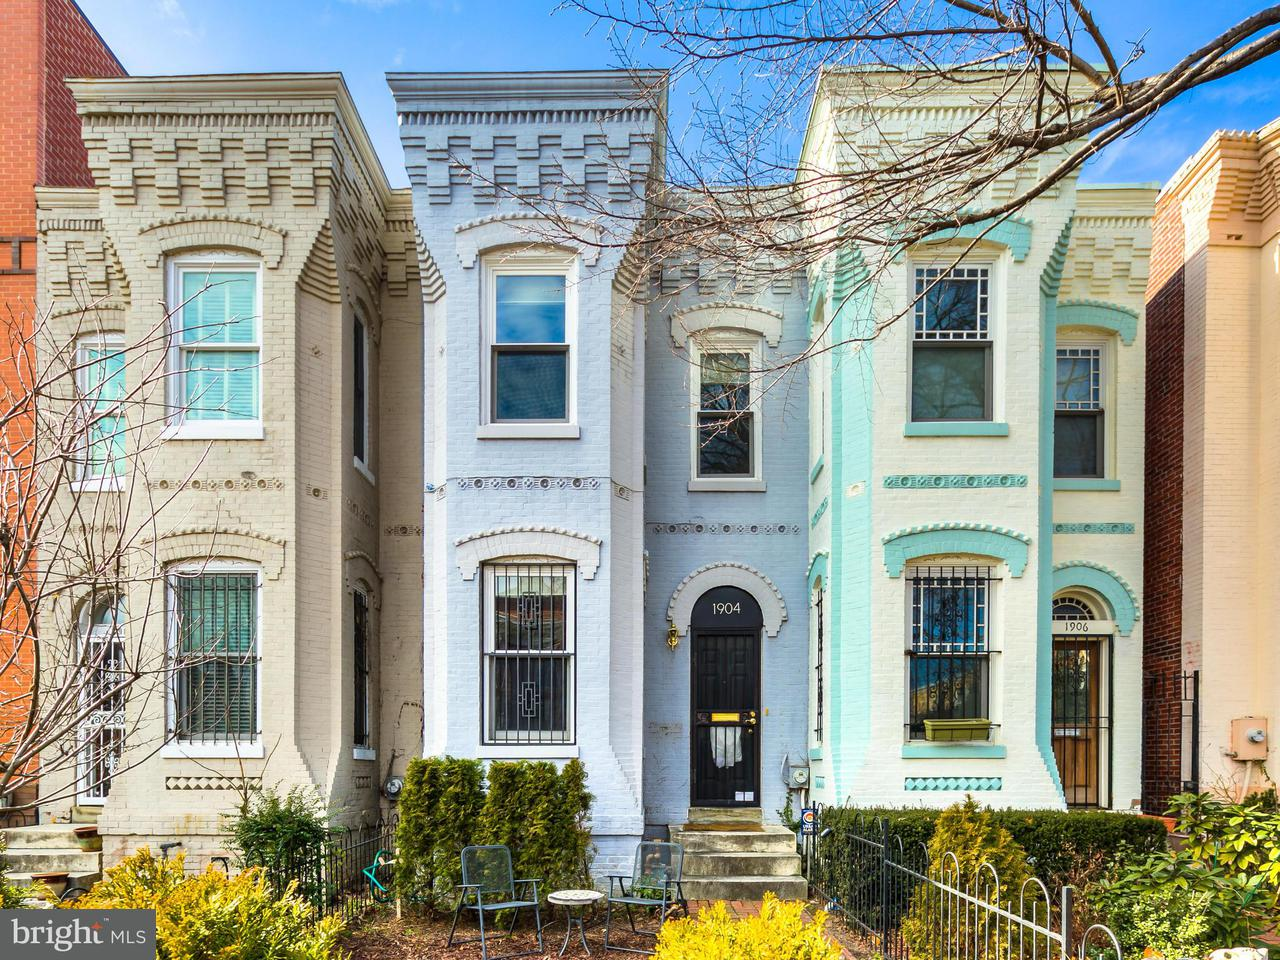 Townhouse for Sale at 1904 11th St Nw 1904 11th St Nw Washington, District Of Columbia 20001 United States